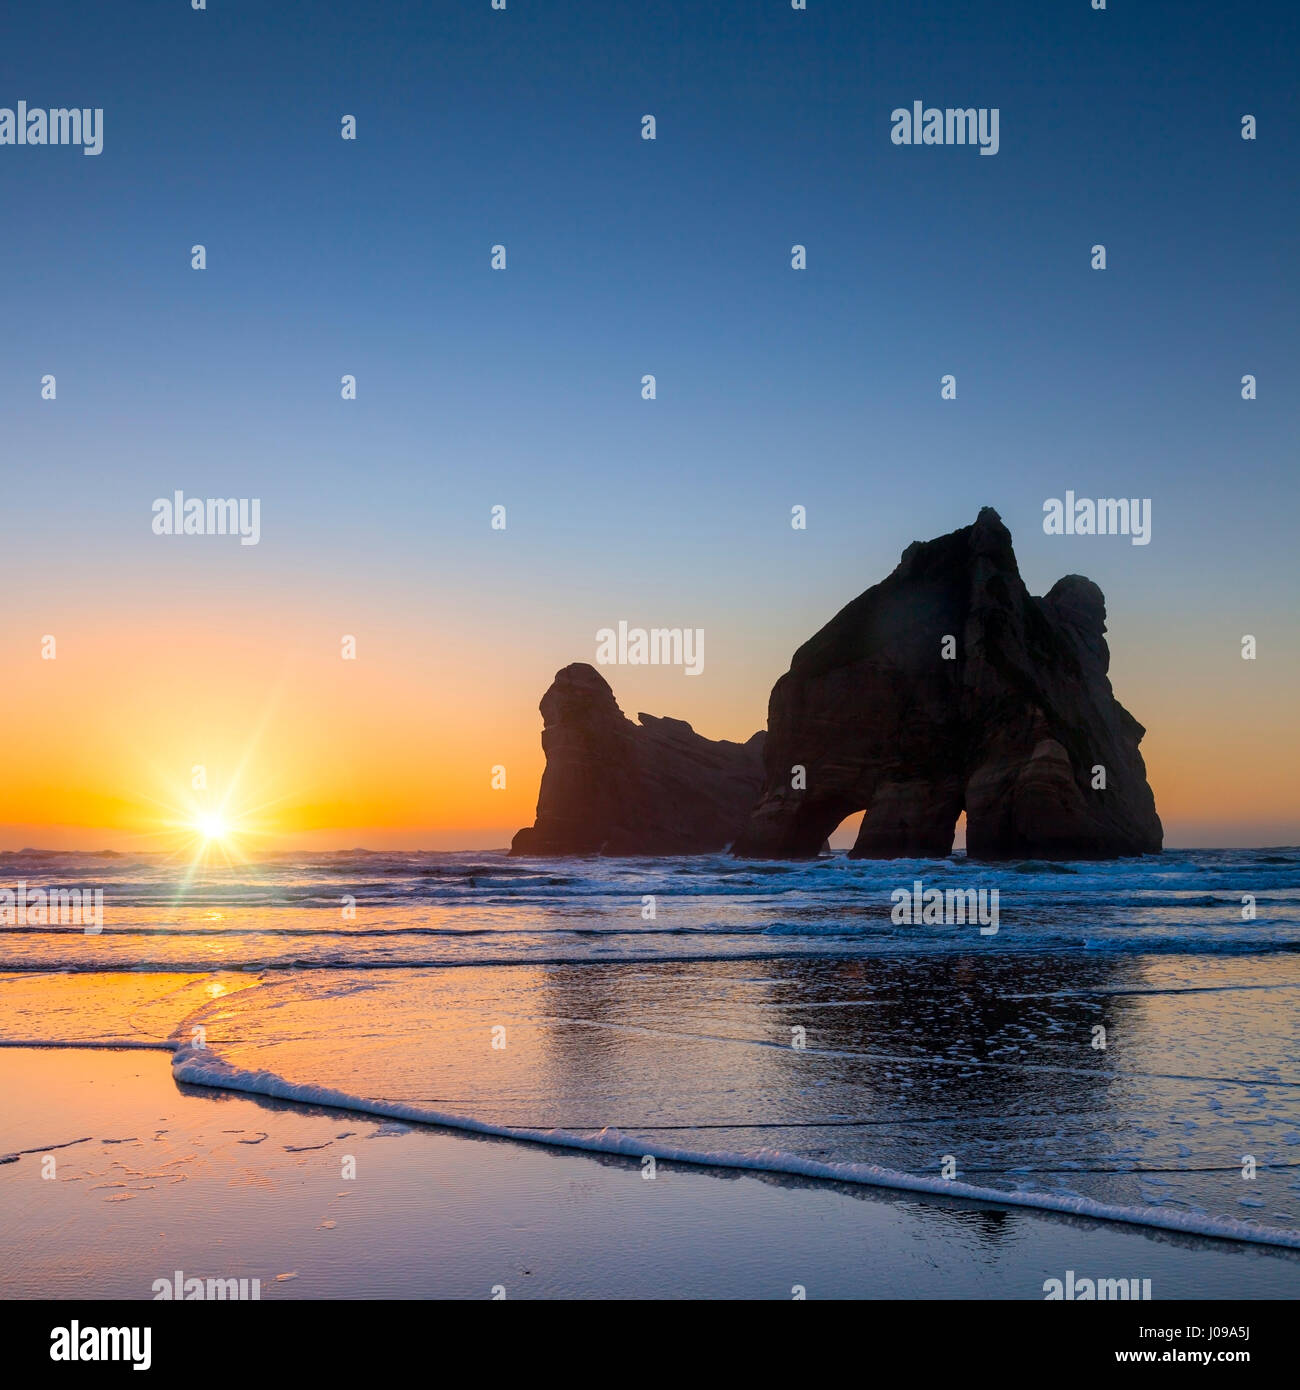 Wharariki Beach and Archway Islands, Tasman, New Zealand. - Stock Image